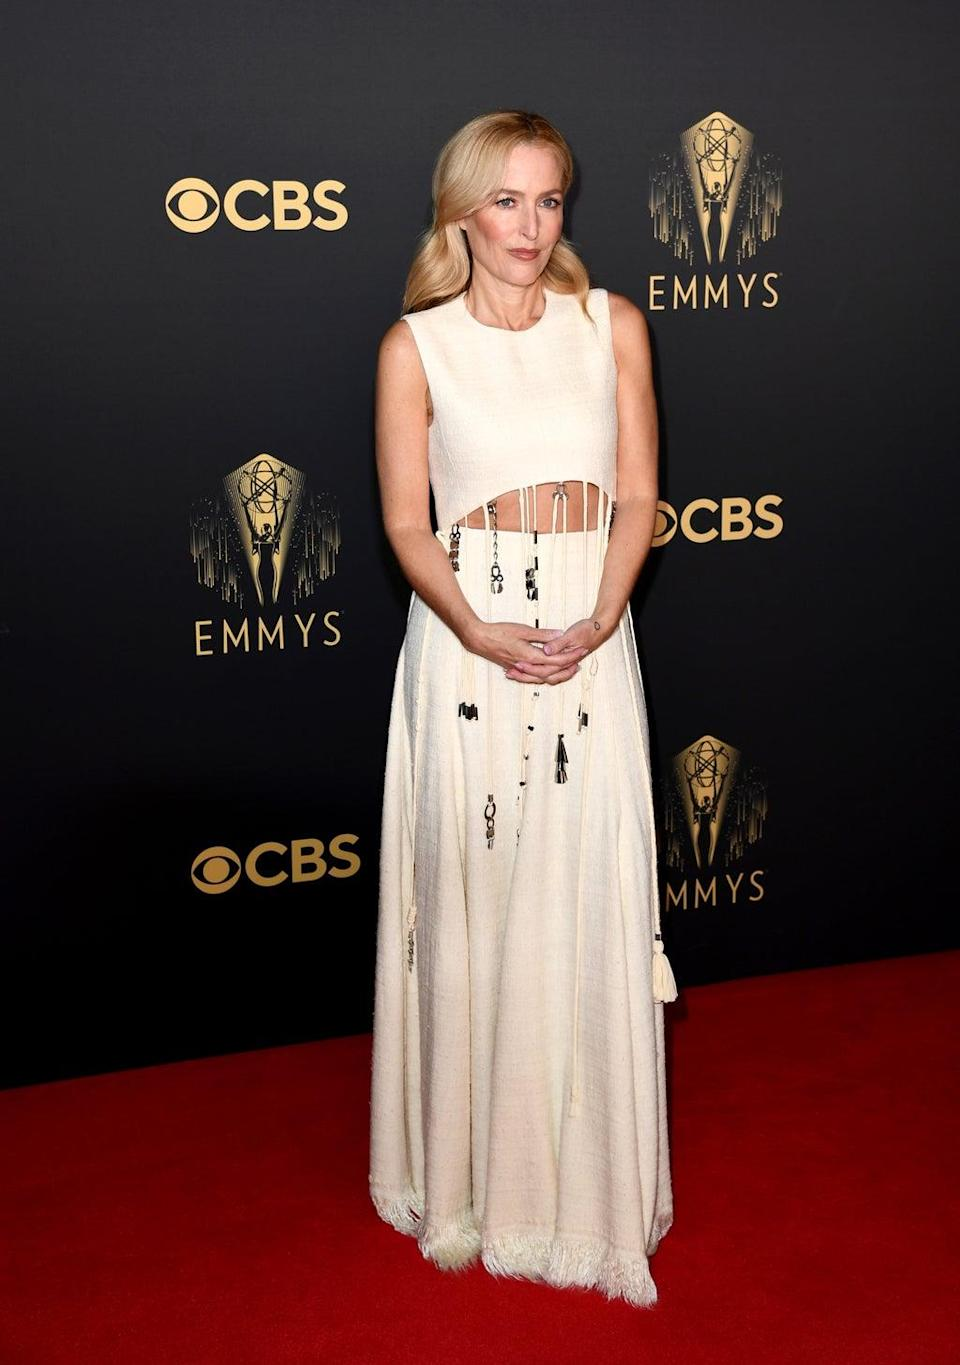 Gillian Anderson at the 2021 Emmys Awards (Gareth Cattermole/Getty Images)